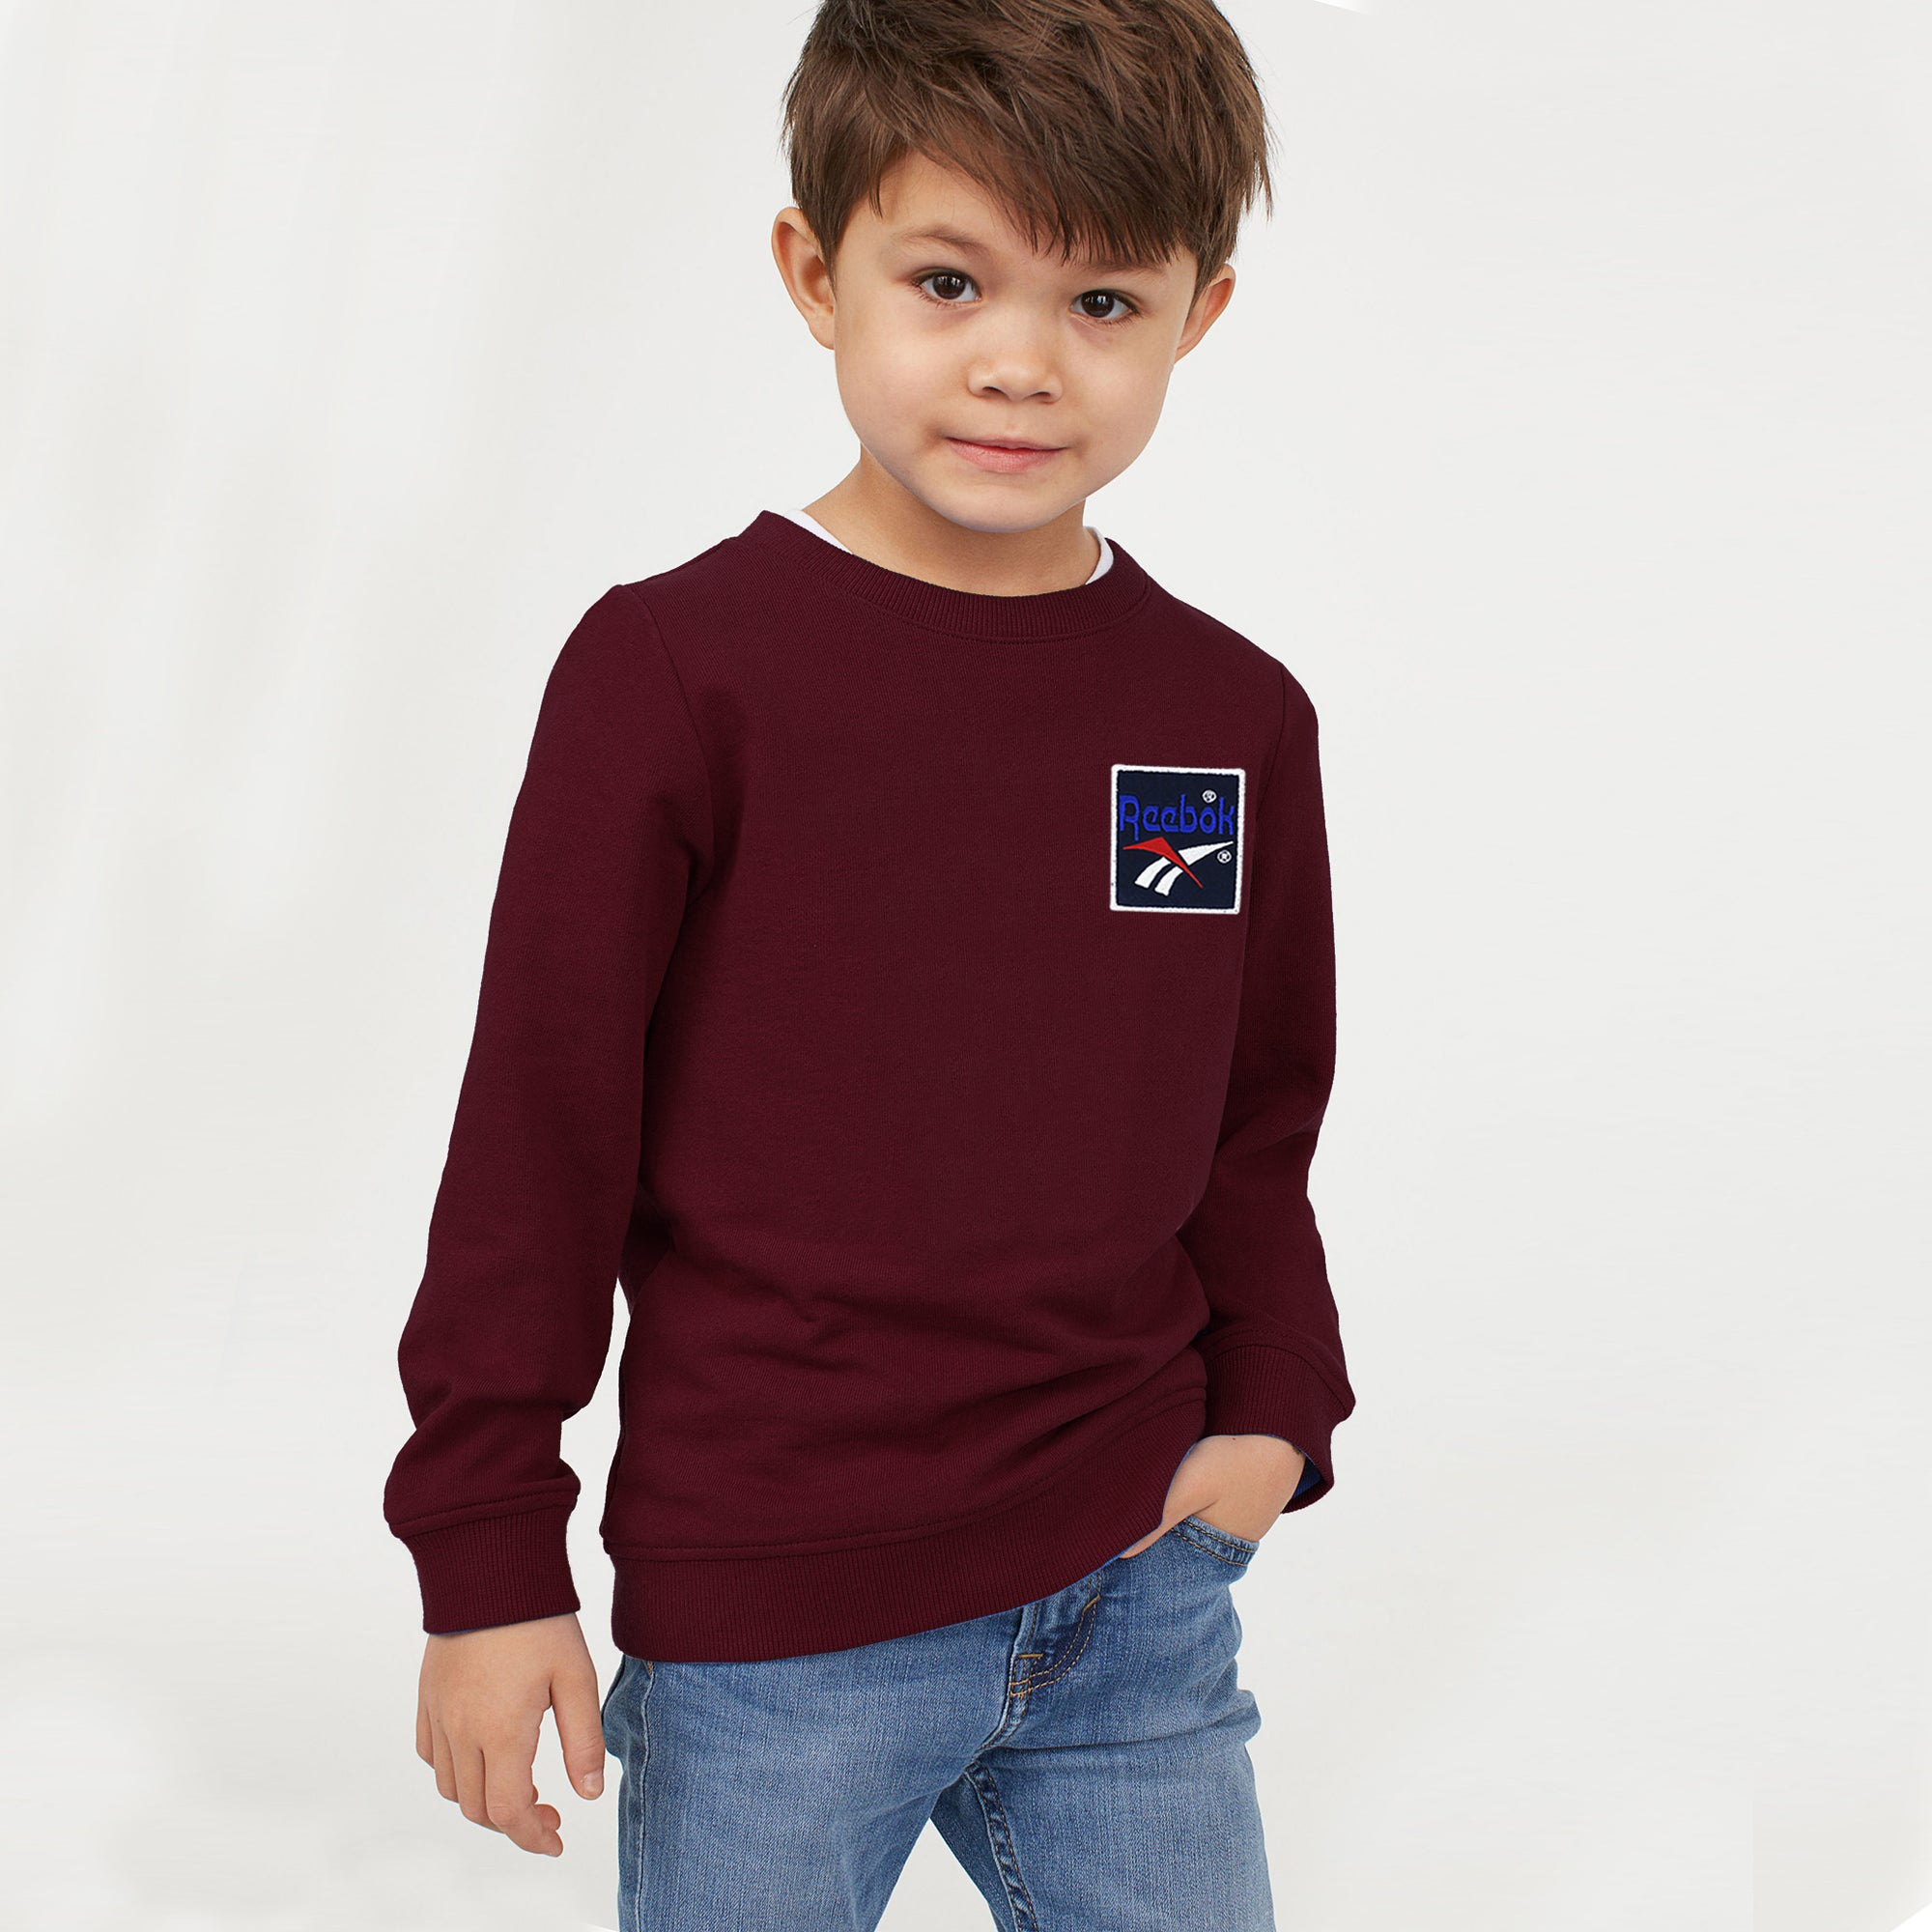 Reebok Terry Fleece Sweatshirt For Kids-Dark Maroon-BE7894